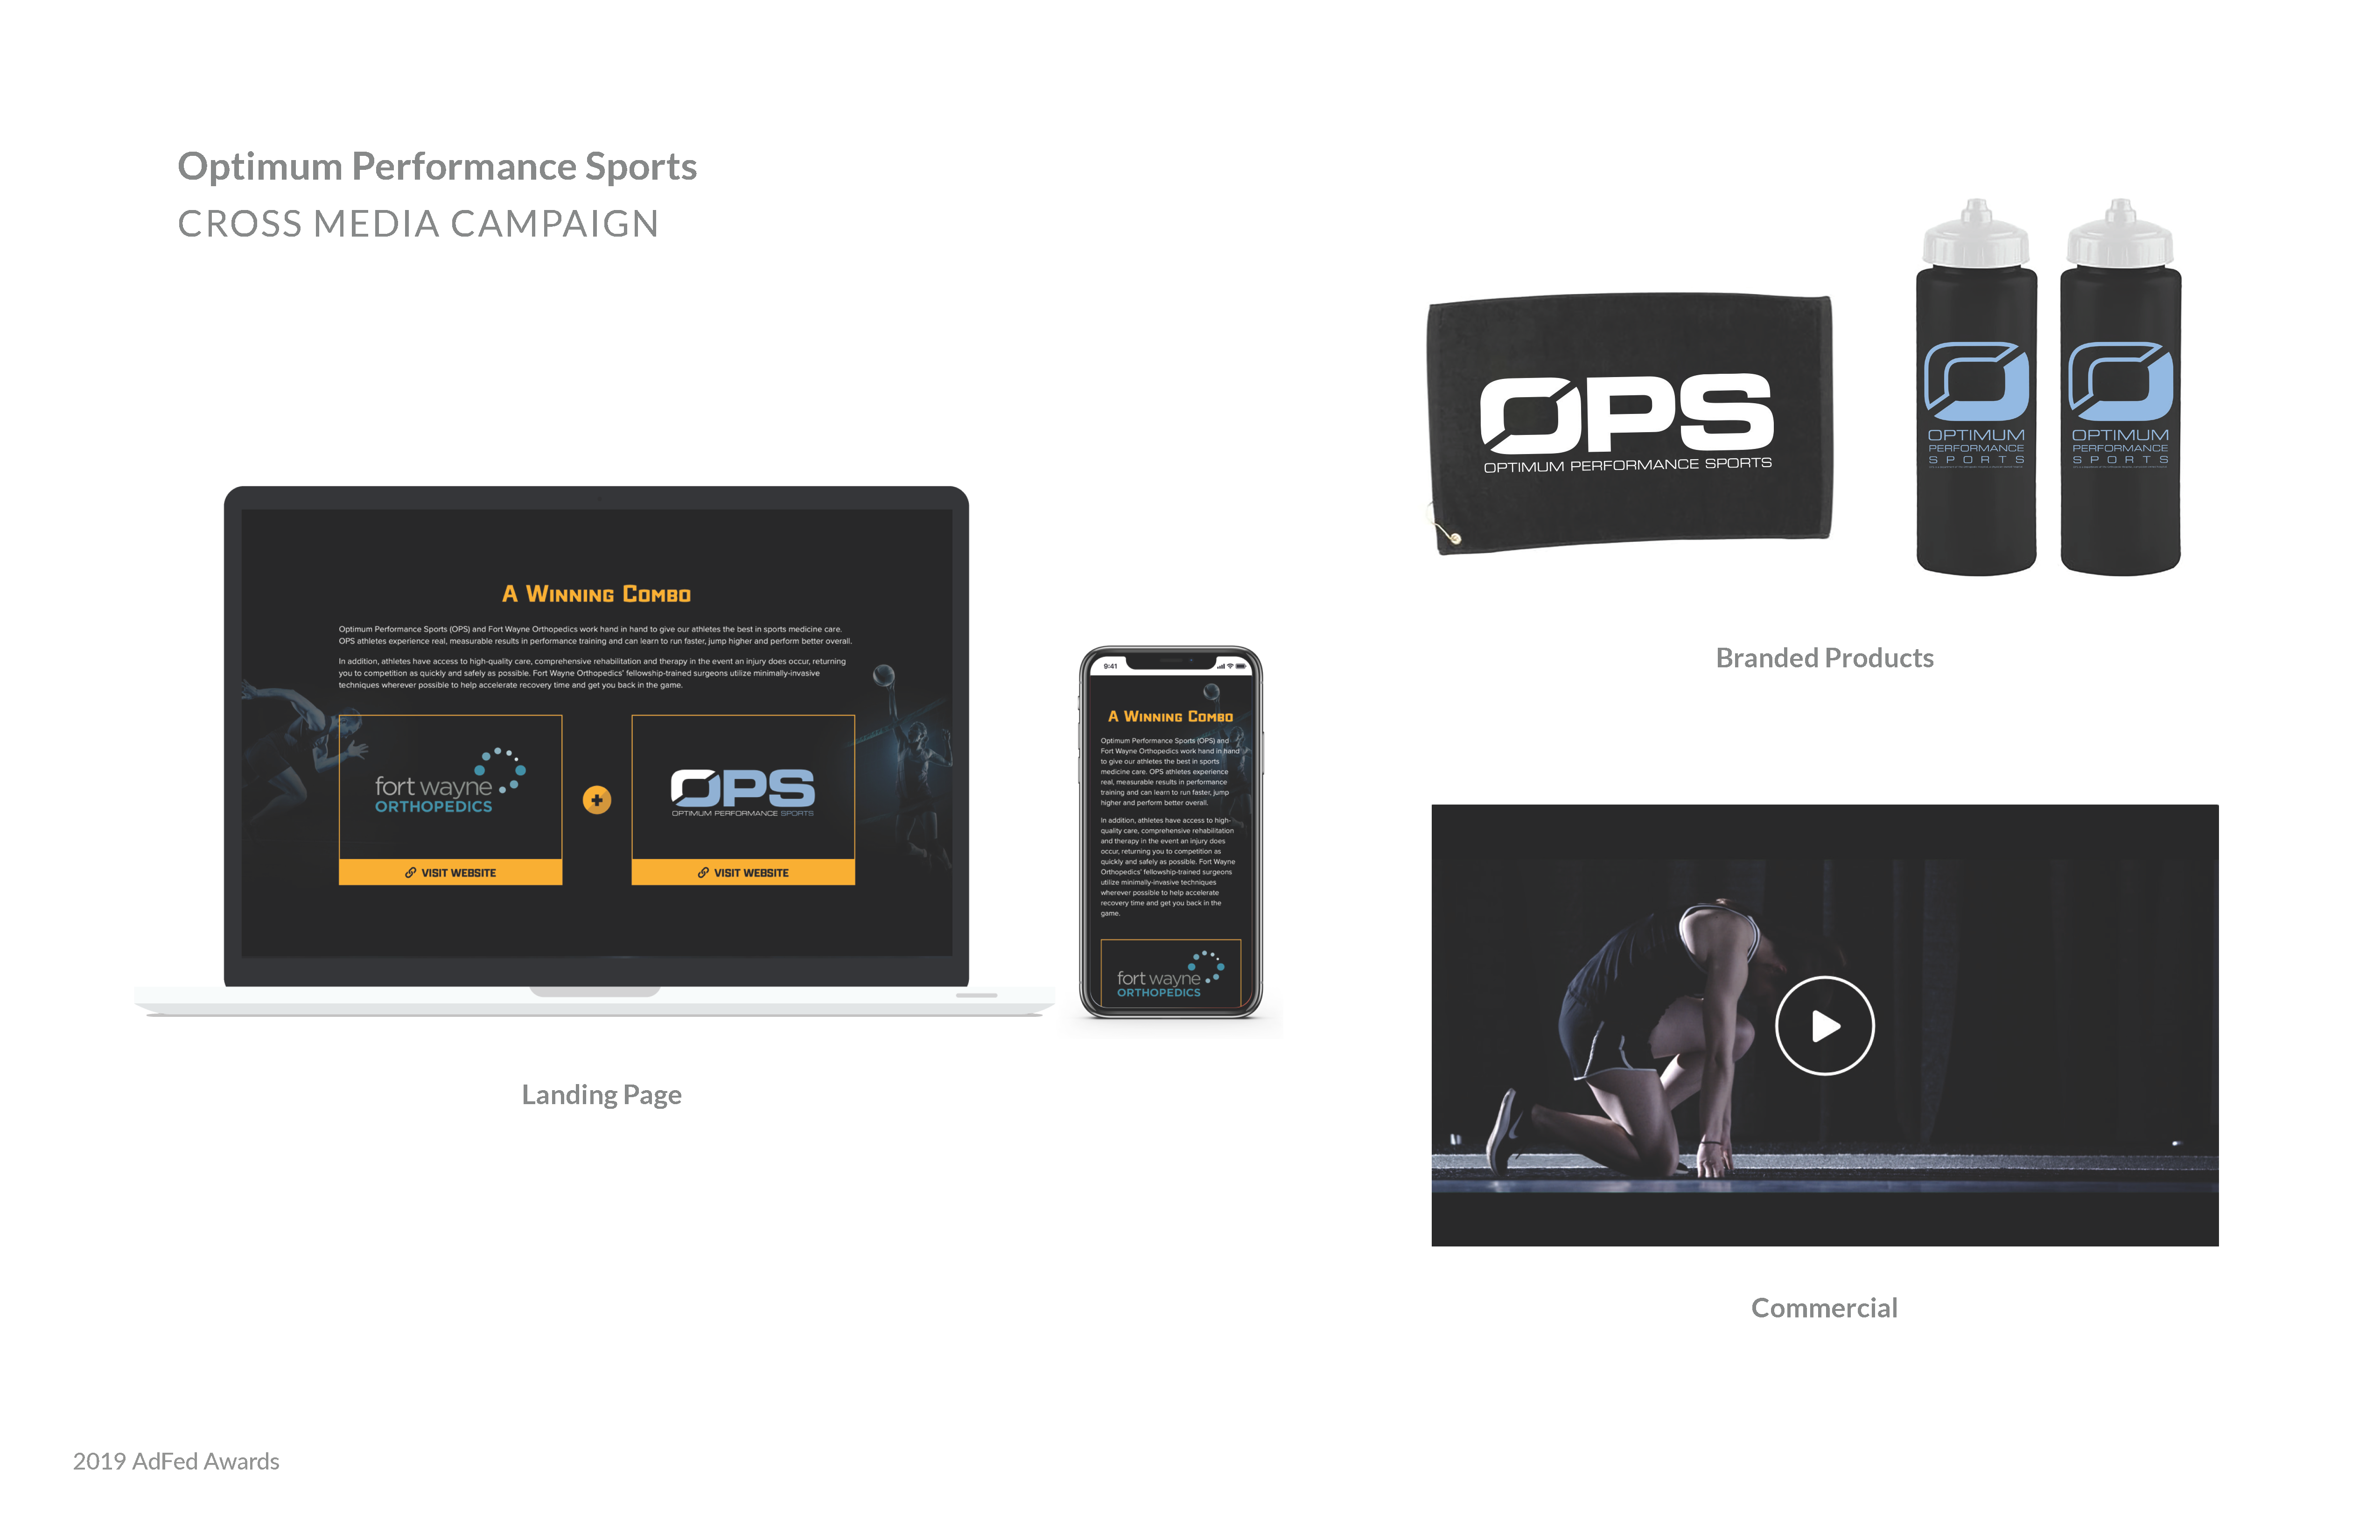 OPS Cross Media Campaign Submission